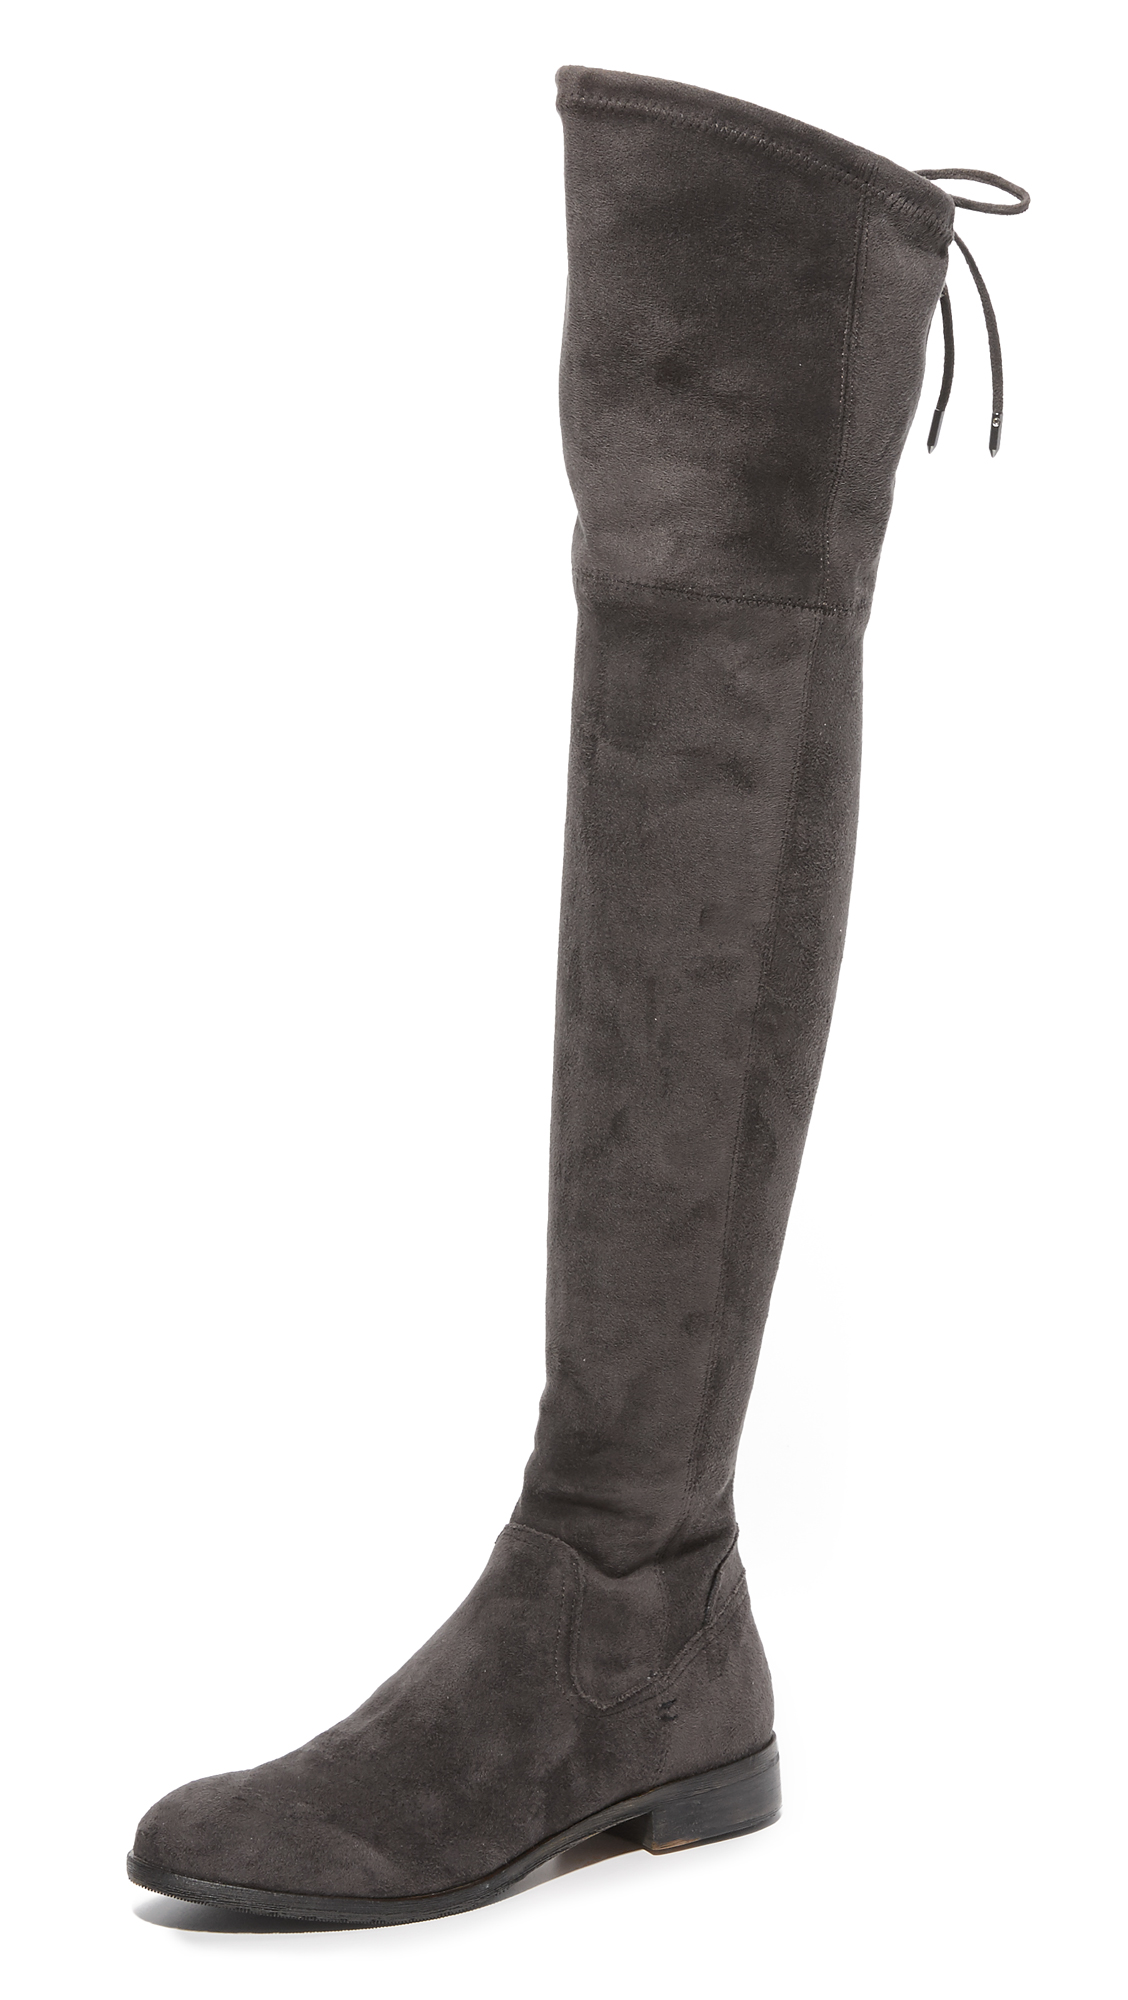 Dolce Vita Neely Over The Knee Boots - Anthracite at Shopbop